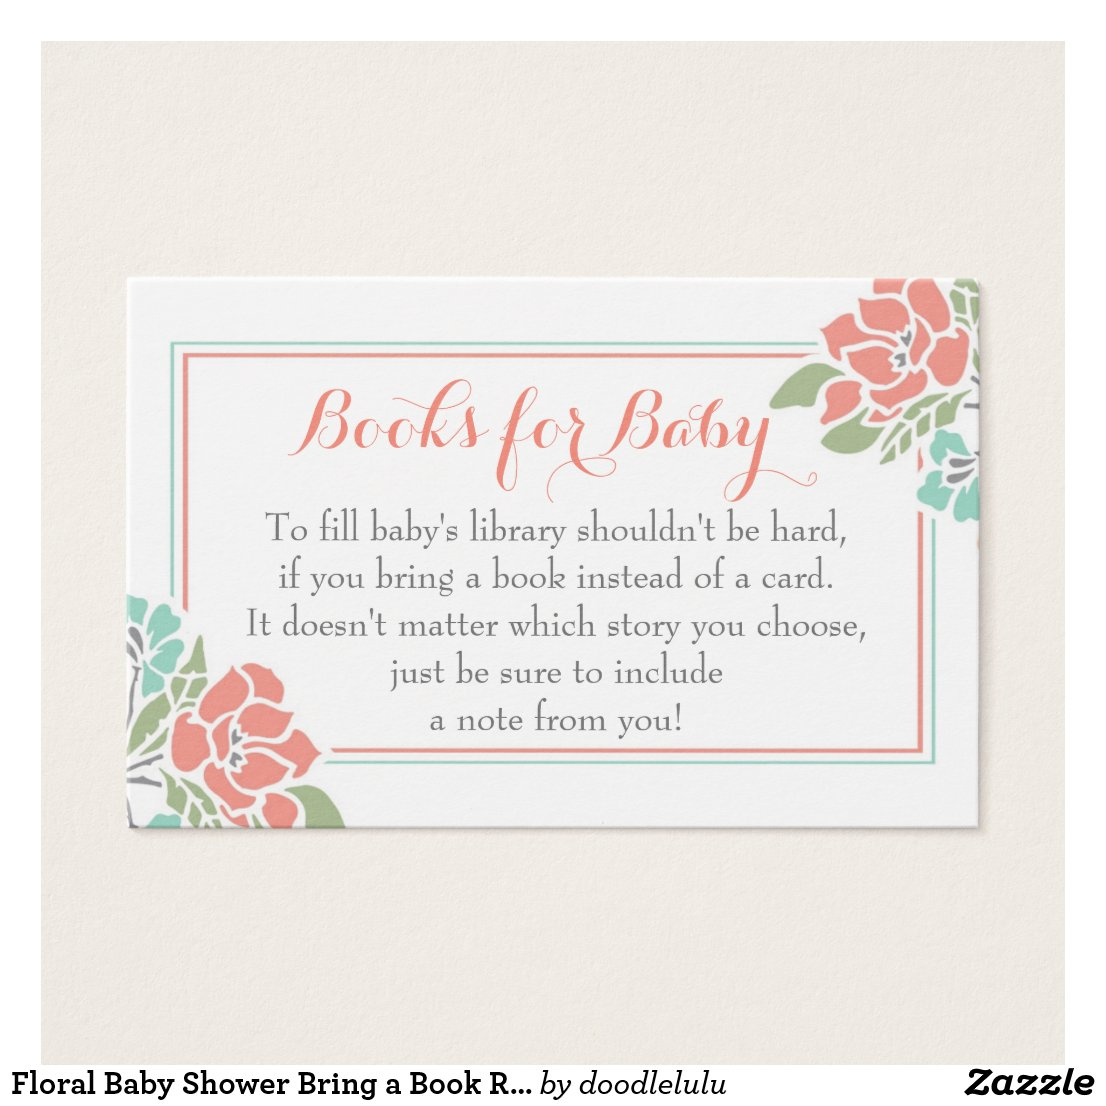 Floral Baby Shower Bring a Book Request